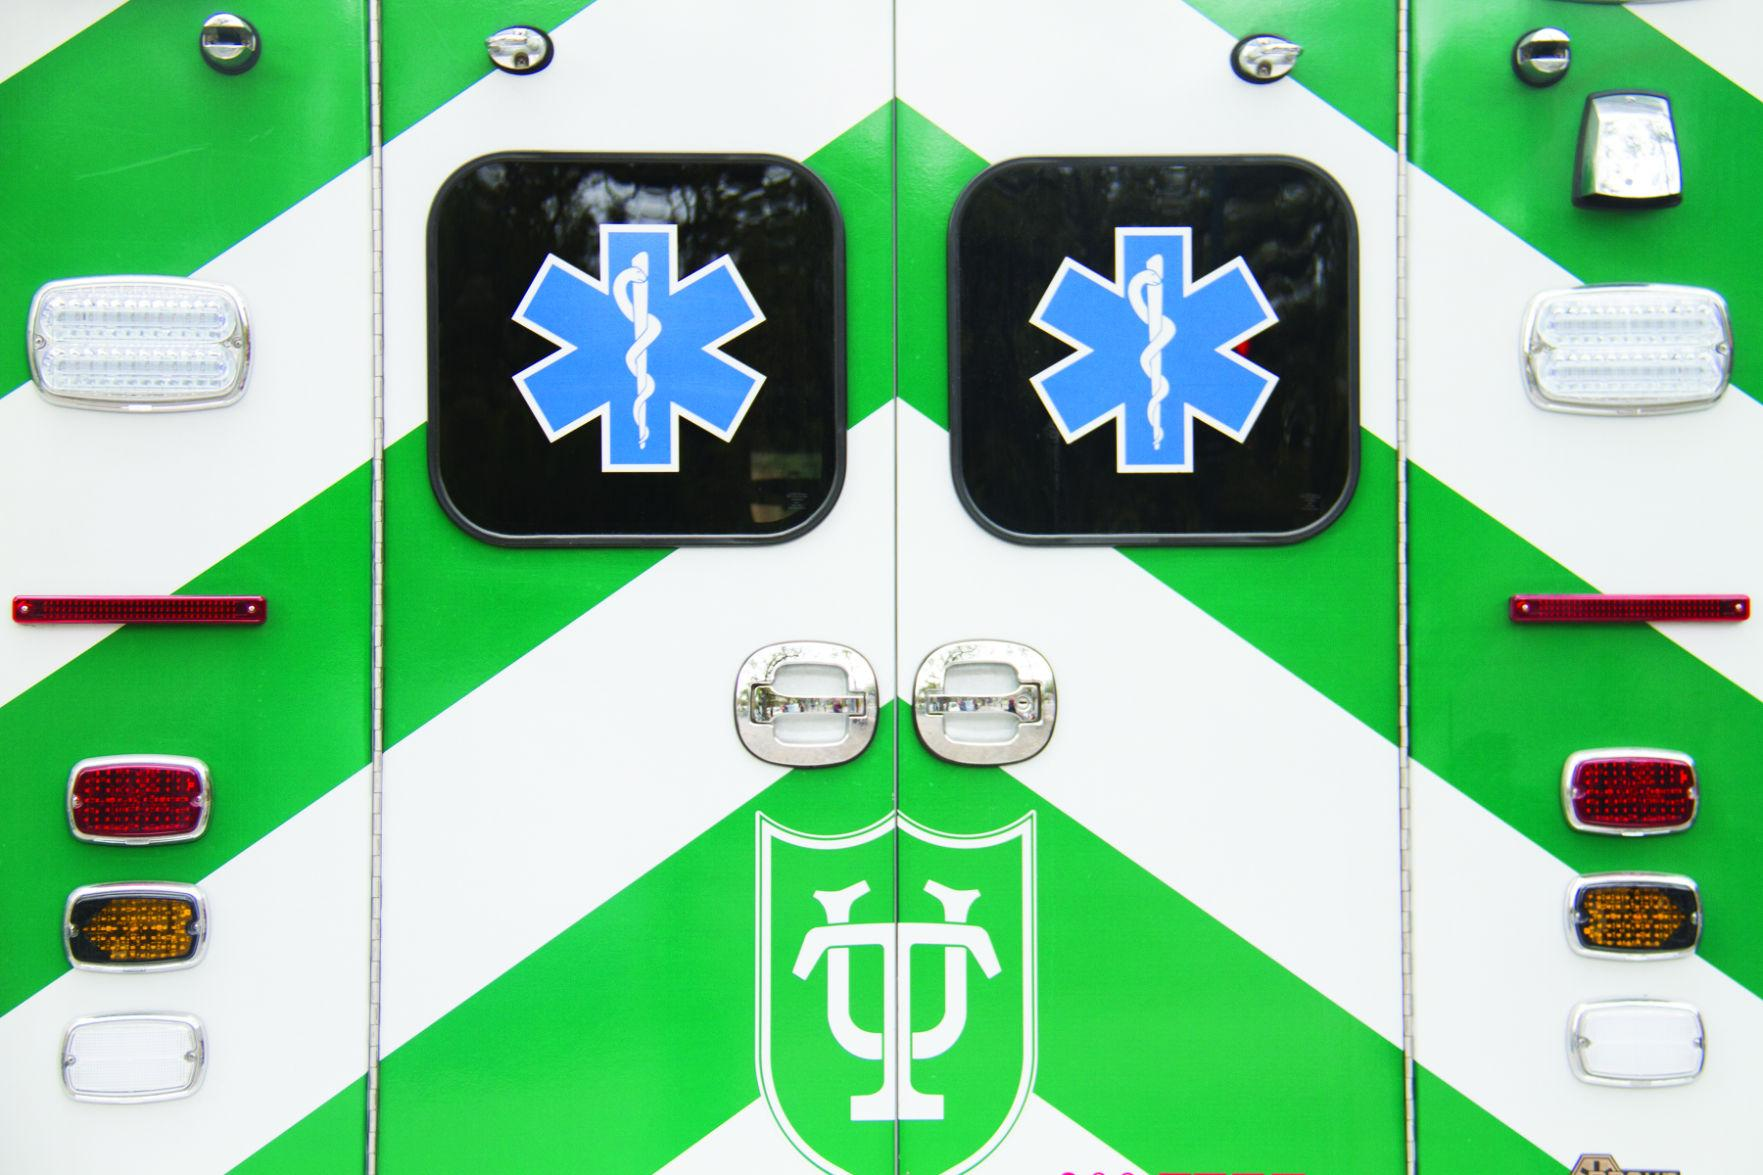 TEMS was charged with hazing and failure to comply in Spring of 2015. Following more recent allegations, New Orleans EMS serves as Tulane's first responders.